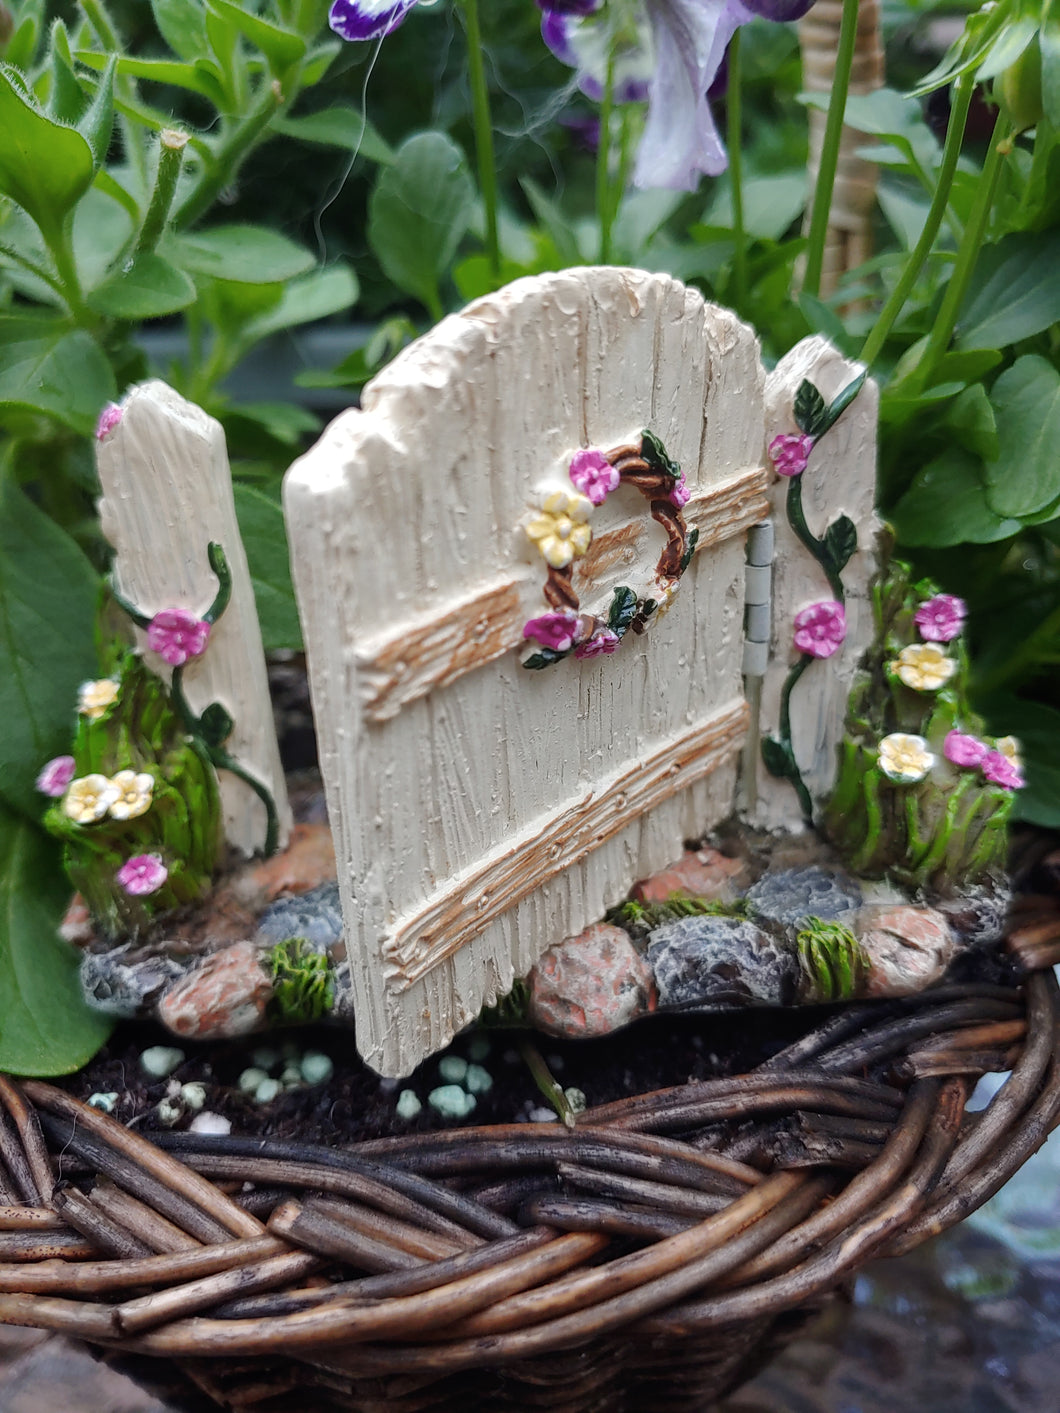 FAIRY GARDEN – RESIN – 'HINGED GATE' | MG376 | GATE WORKS, OVER GREY, TAN, WHITE, STONE PATH WITH MOSS | PARTIALLY OPENED, FLORAL WREATH/PINK AND YELLOW FLOWERS; SAME ON THE BLOOMS AND FLOWERING VINE AT GATE POST BASES. WOVEN BASKET, PURPLE/WHITE FLOWERS, BRIGHT GREEN LEAVES.